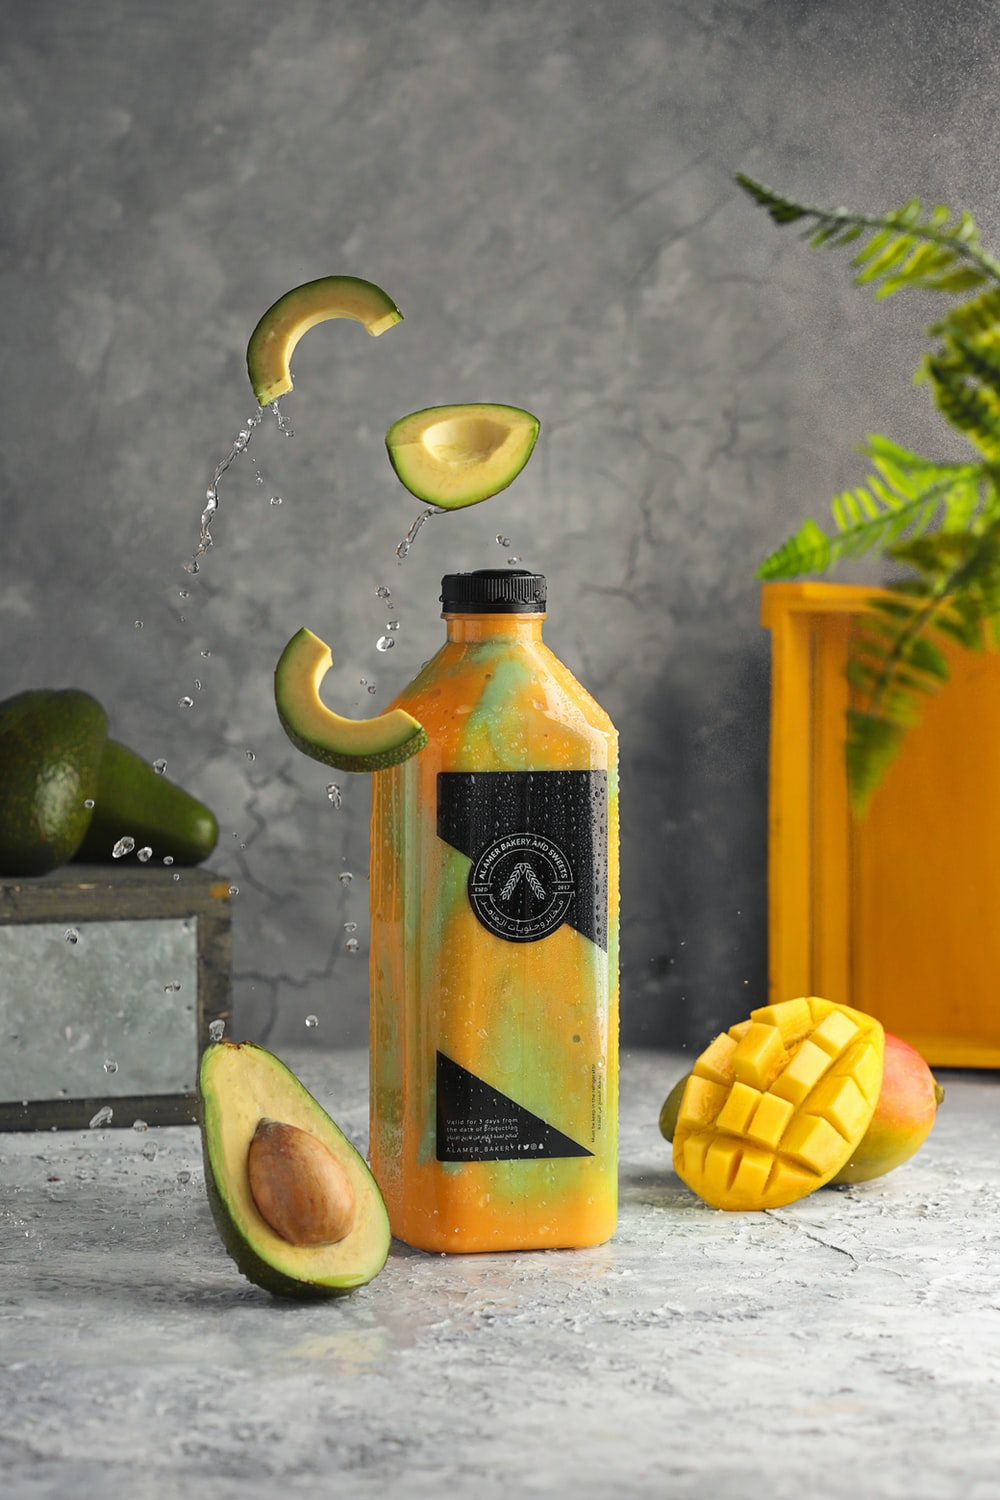 yellow and black bottle with water